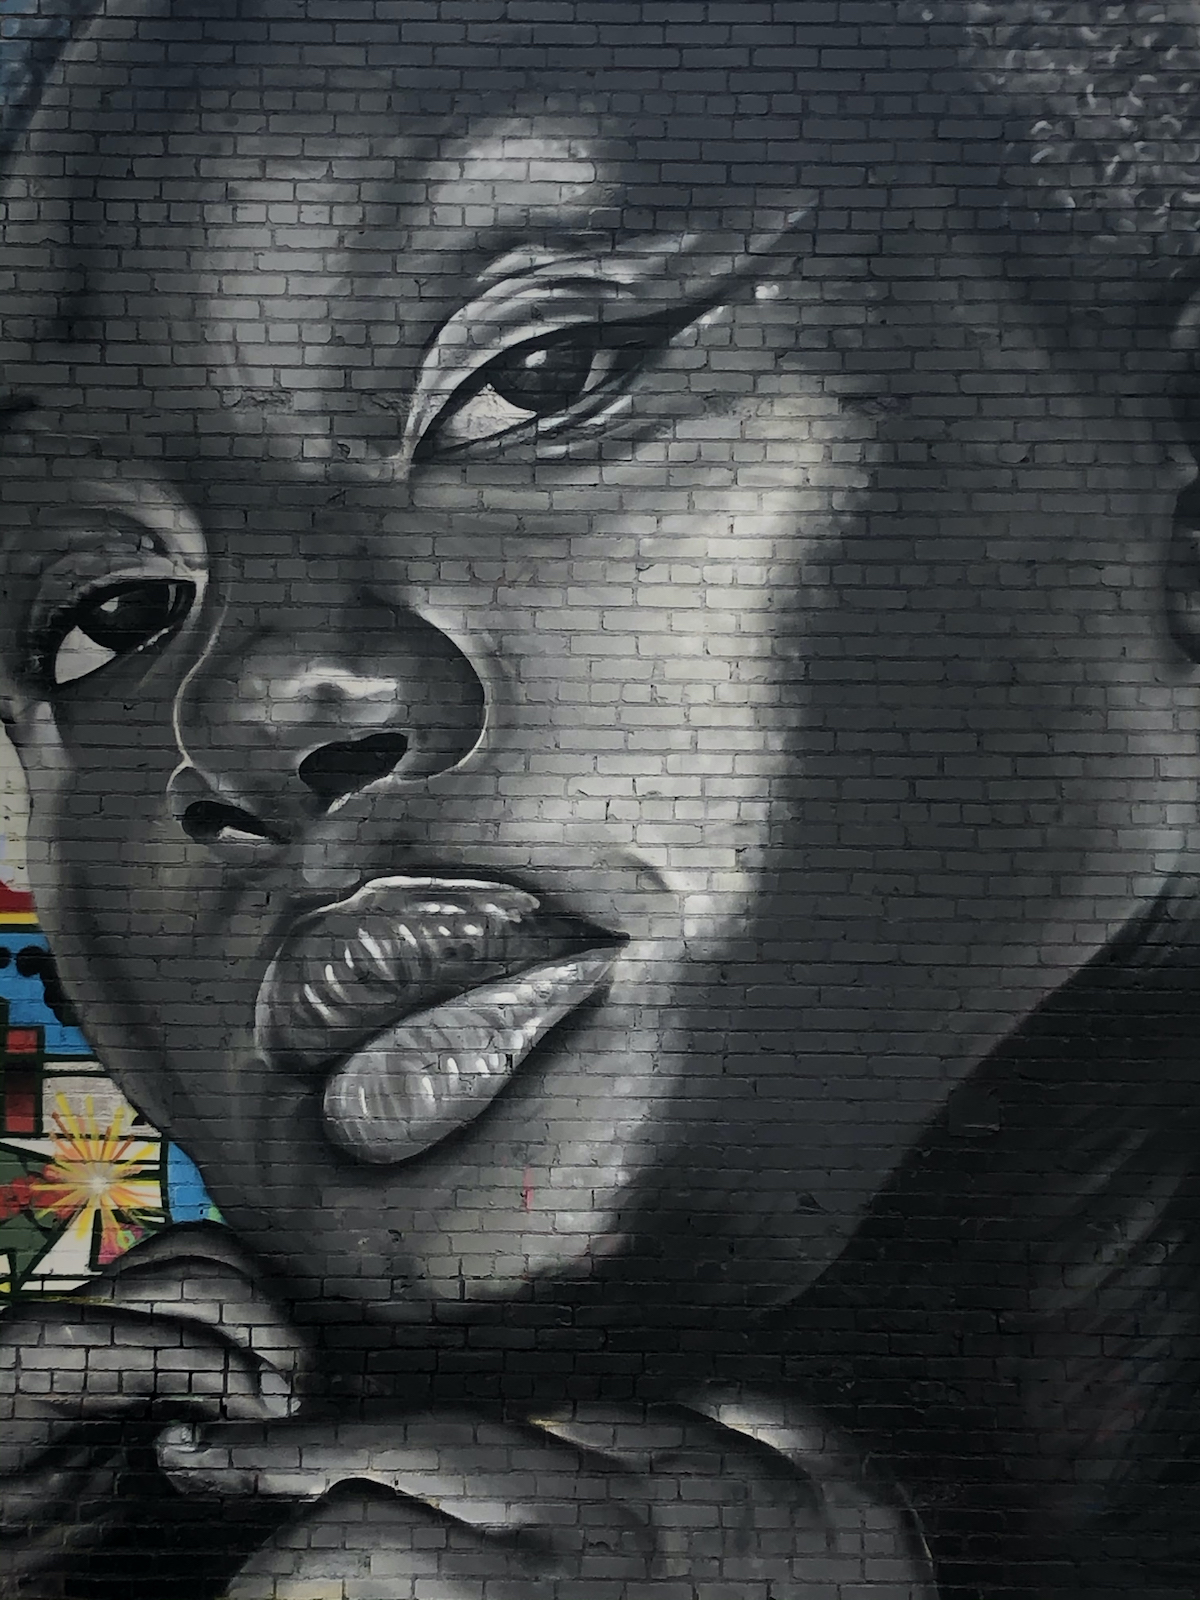 A mural of a black woman displayed on the side of a building